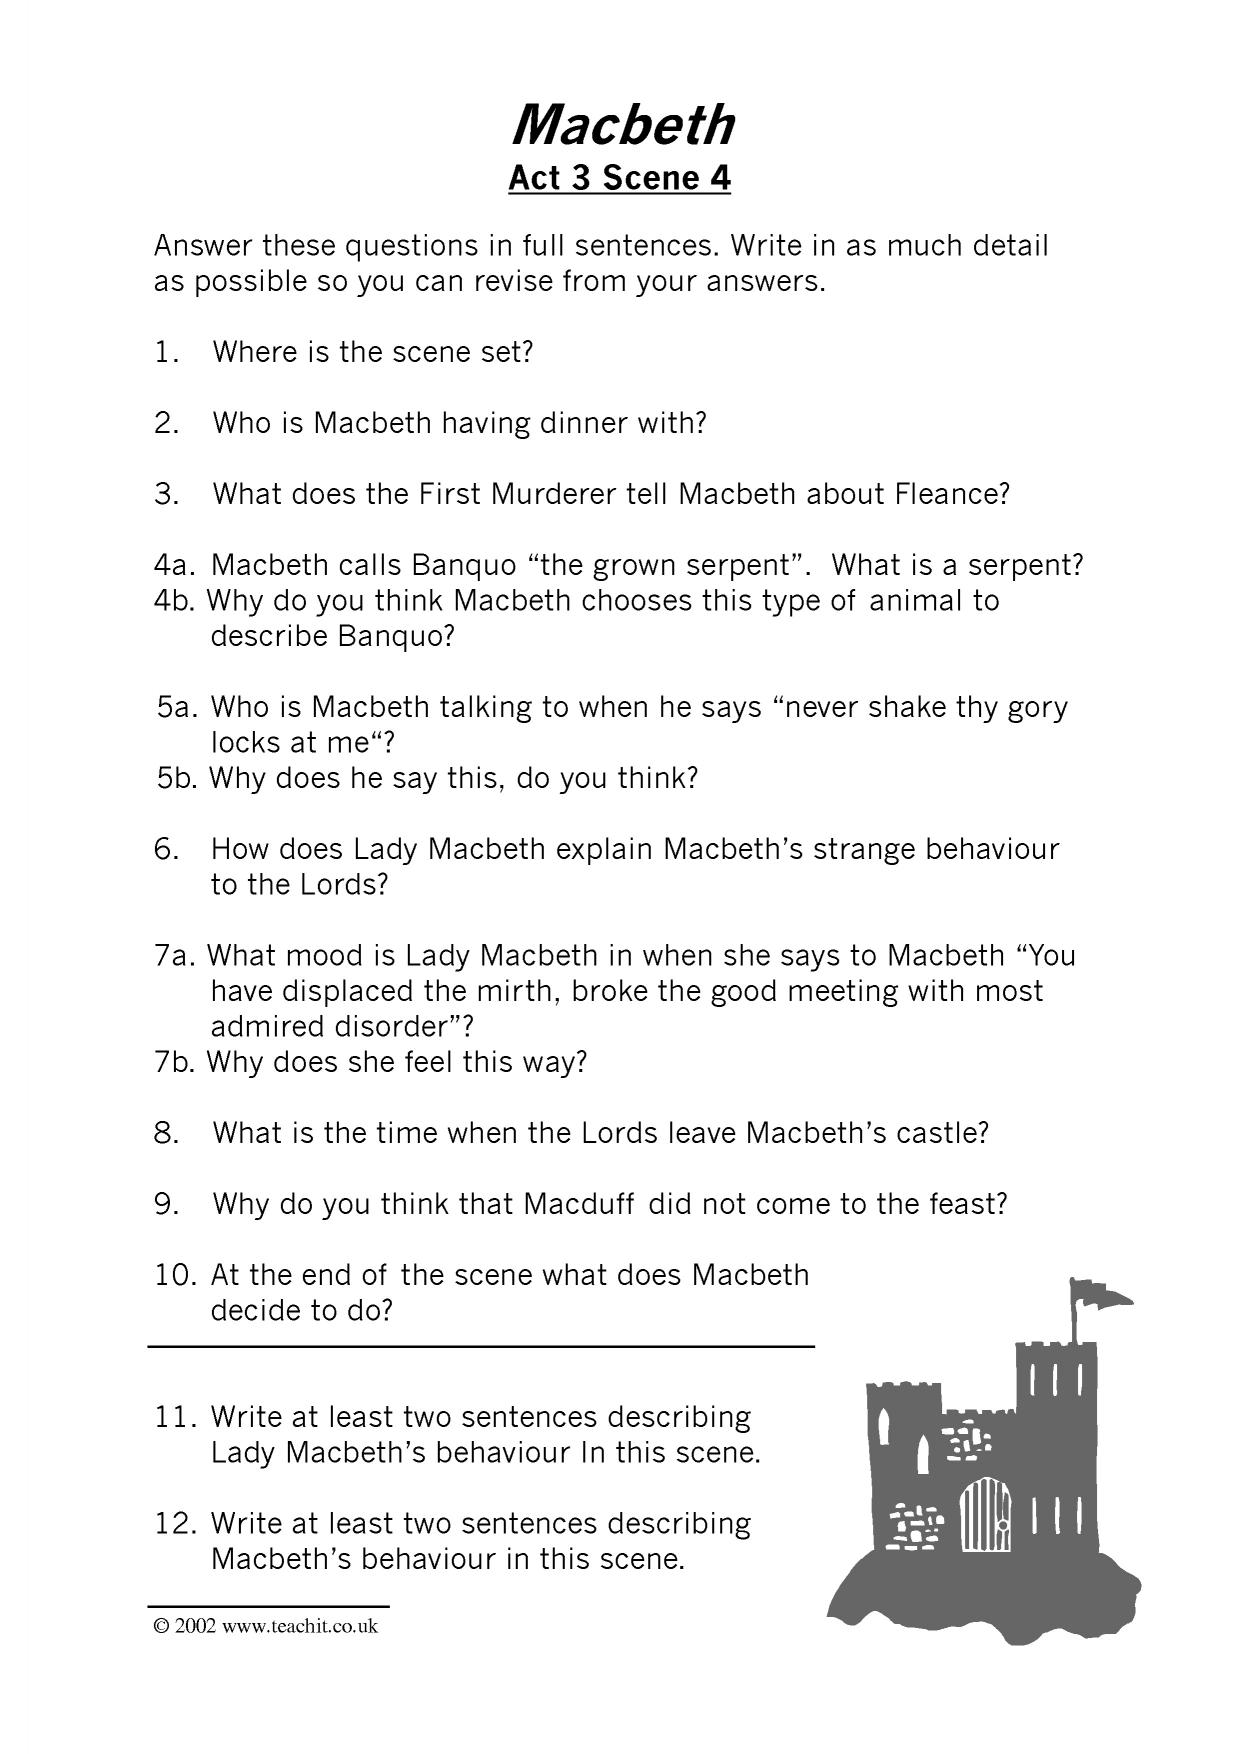 macbeth essay questions ks3 An inspiring collection of teaching resources, activities and ideas delivering macbeth lessons if you sell your resources on tescom and would like to be a contributor, please email social@tesglobalcom | see more ideas about student- centered resources, business valuation and dramas.